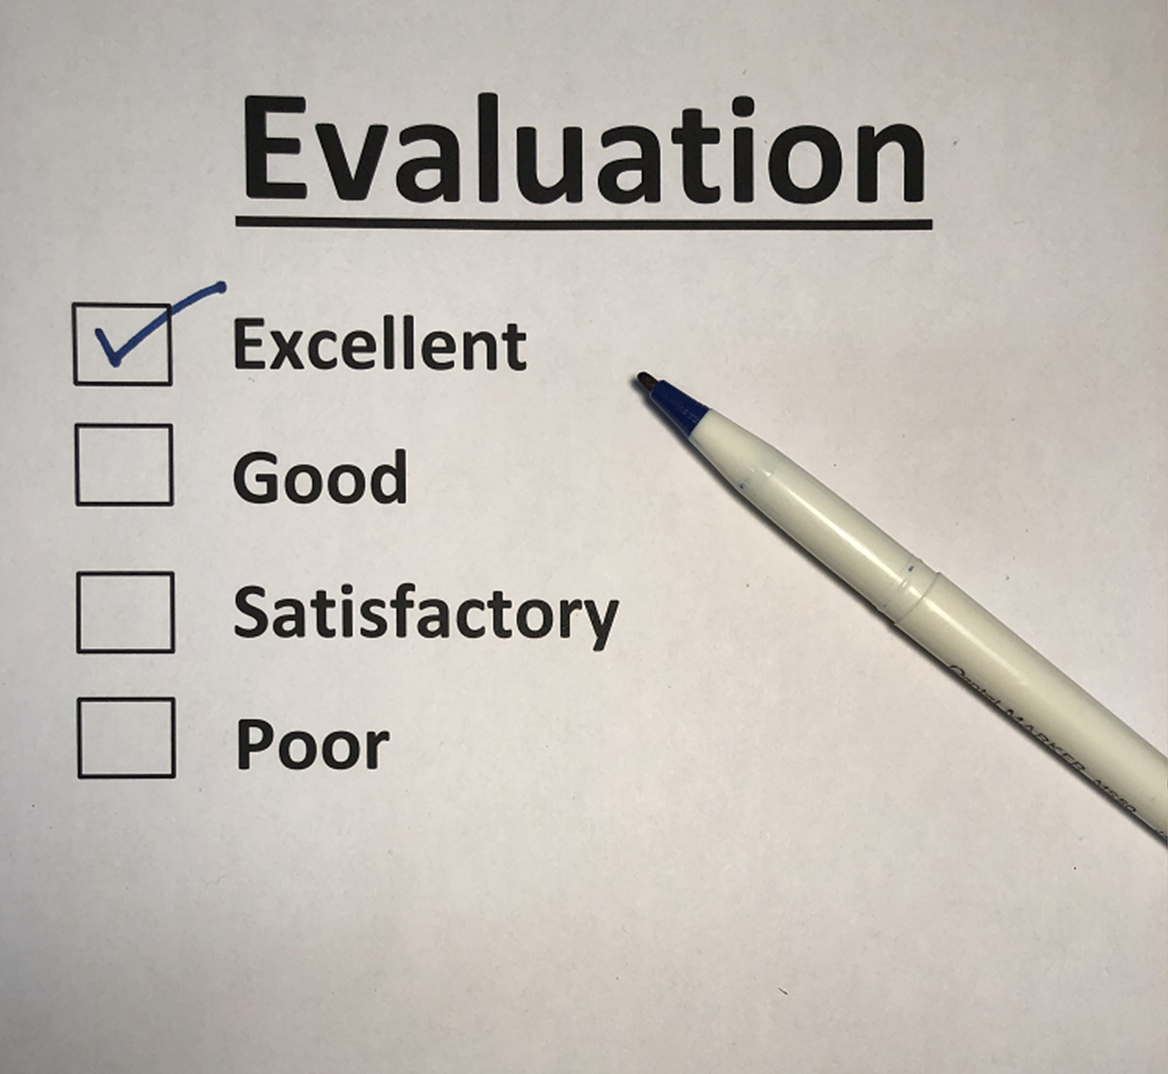 Evaluation Check Box Picture 2.png